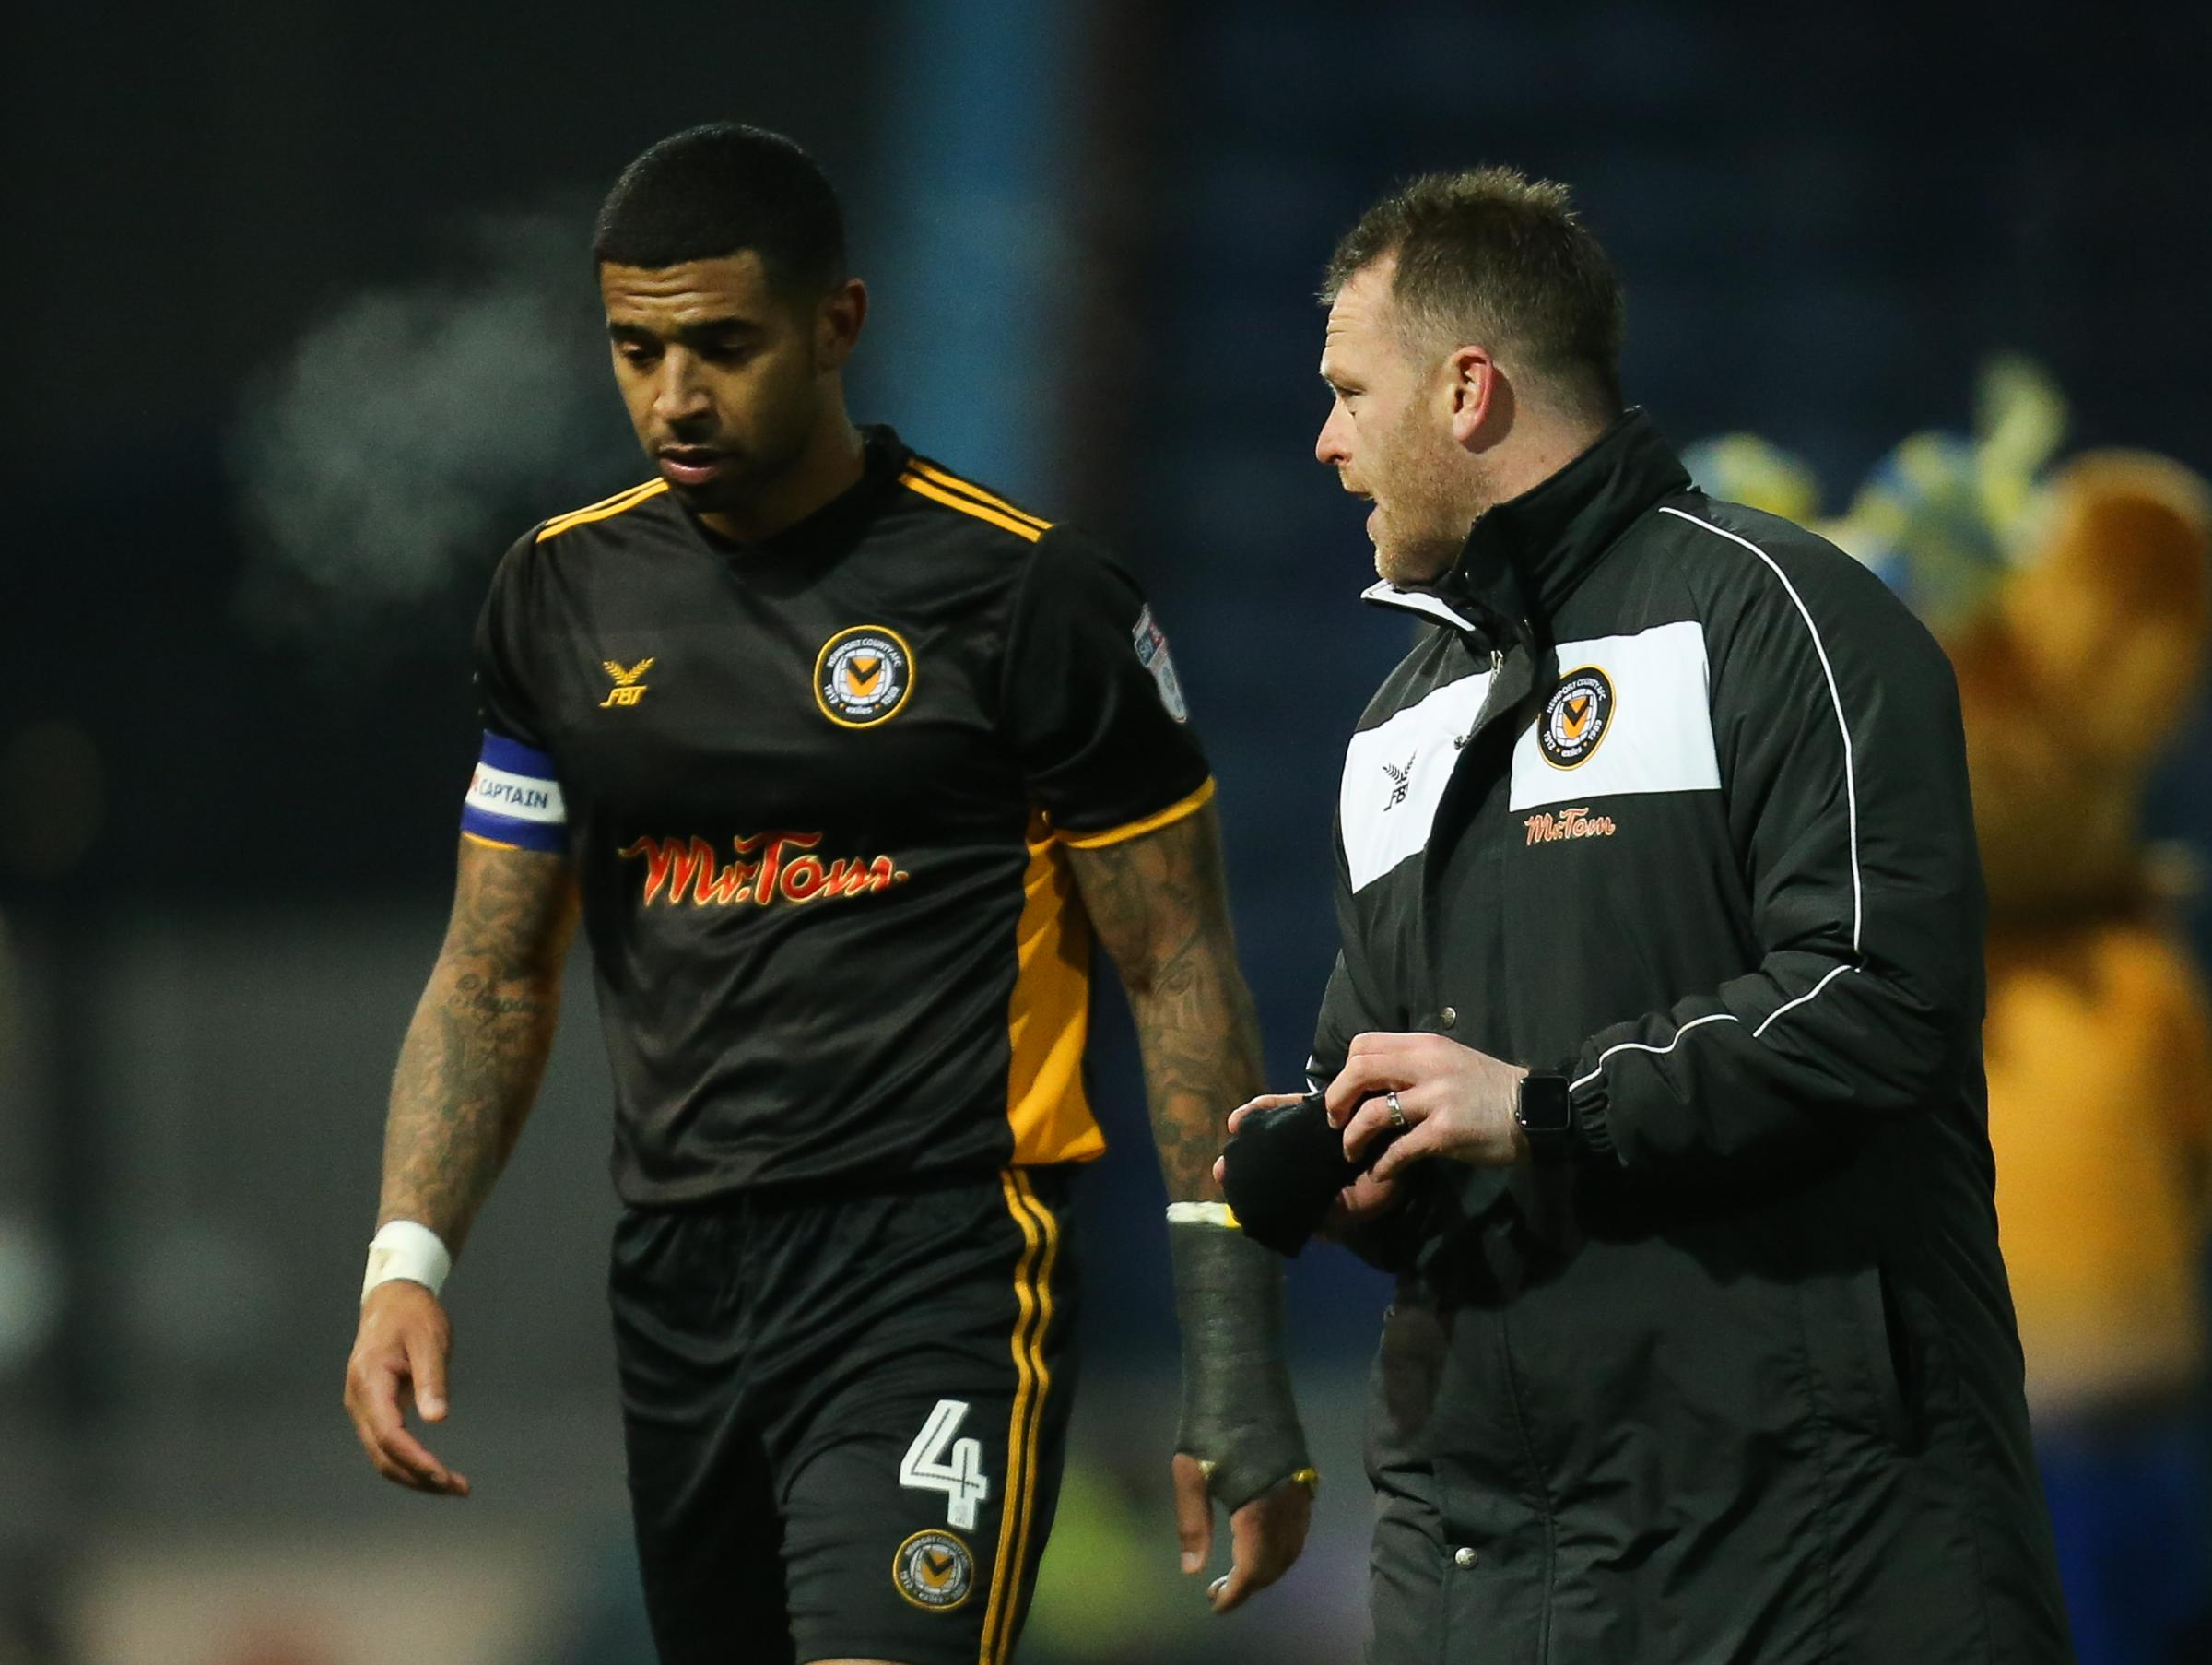 GUTTED: Newport County captain Joss Labadie, left, and manager Michael Flynn after the 5-0 defeat at Mansfield Town. Pictures: Huw Evans Agency